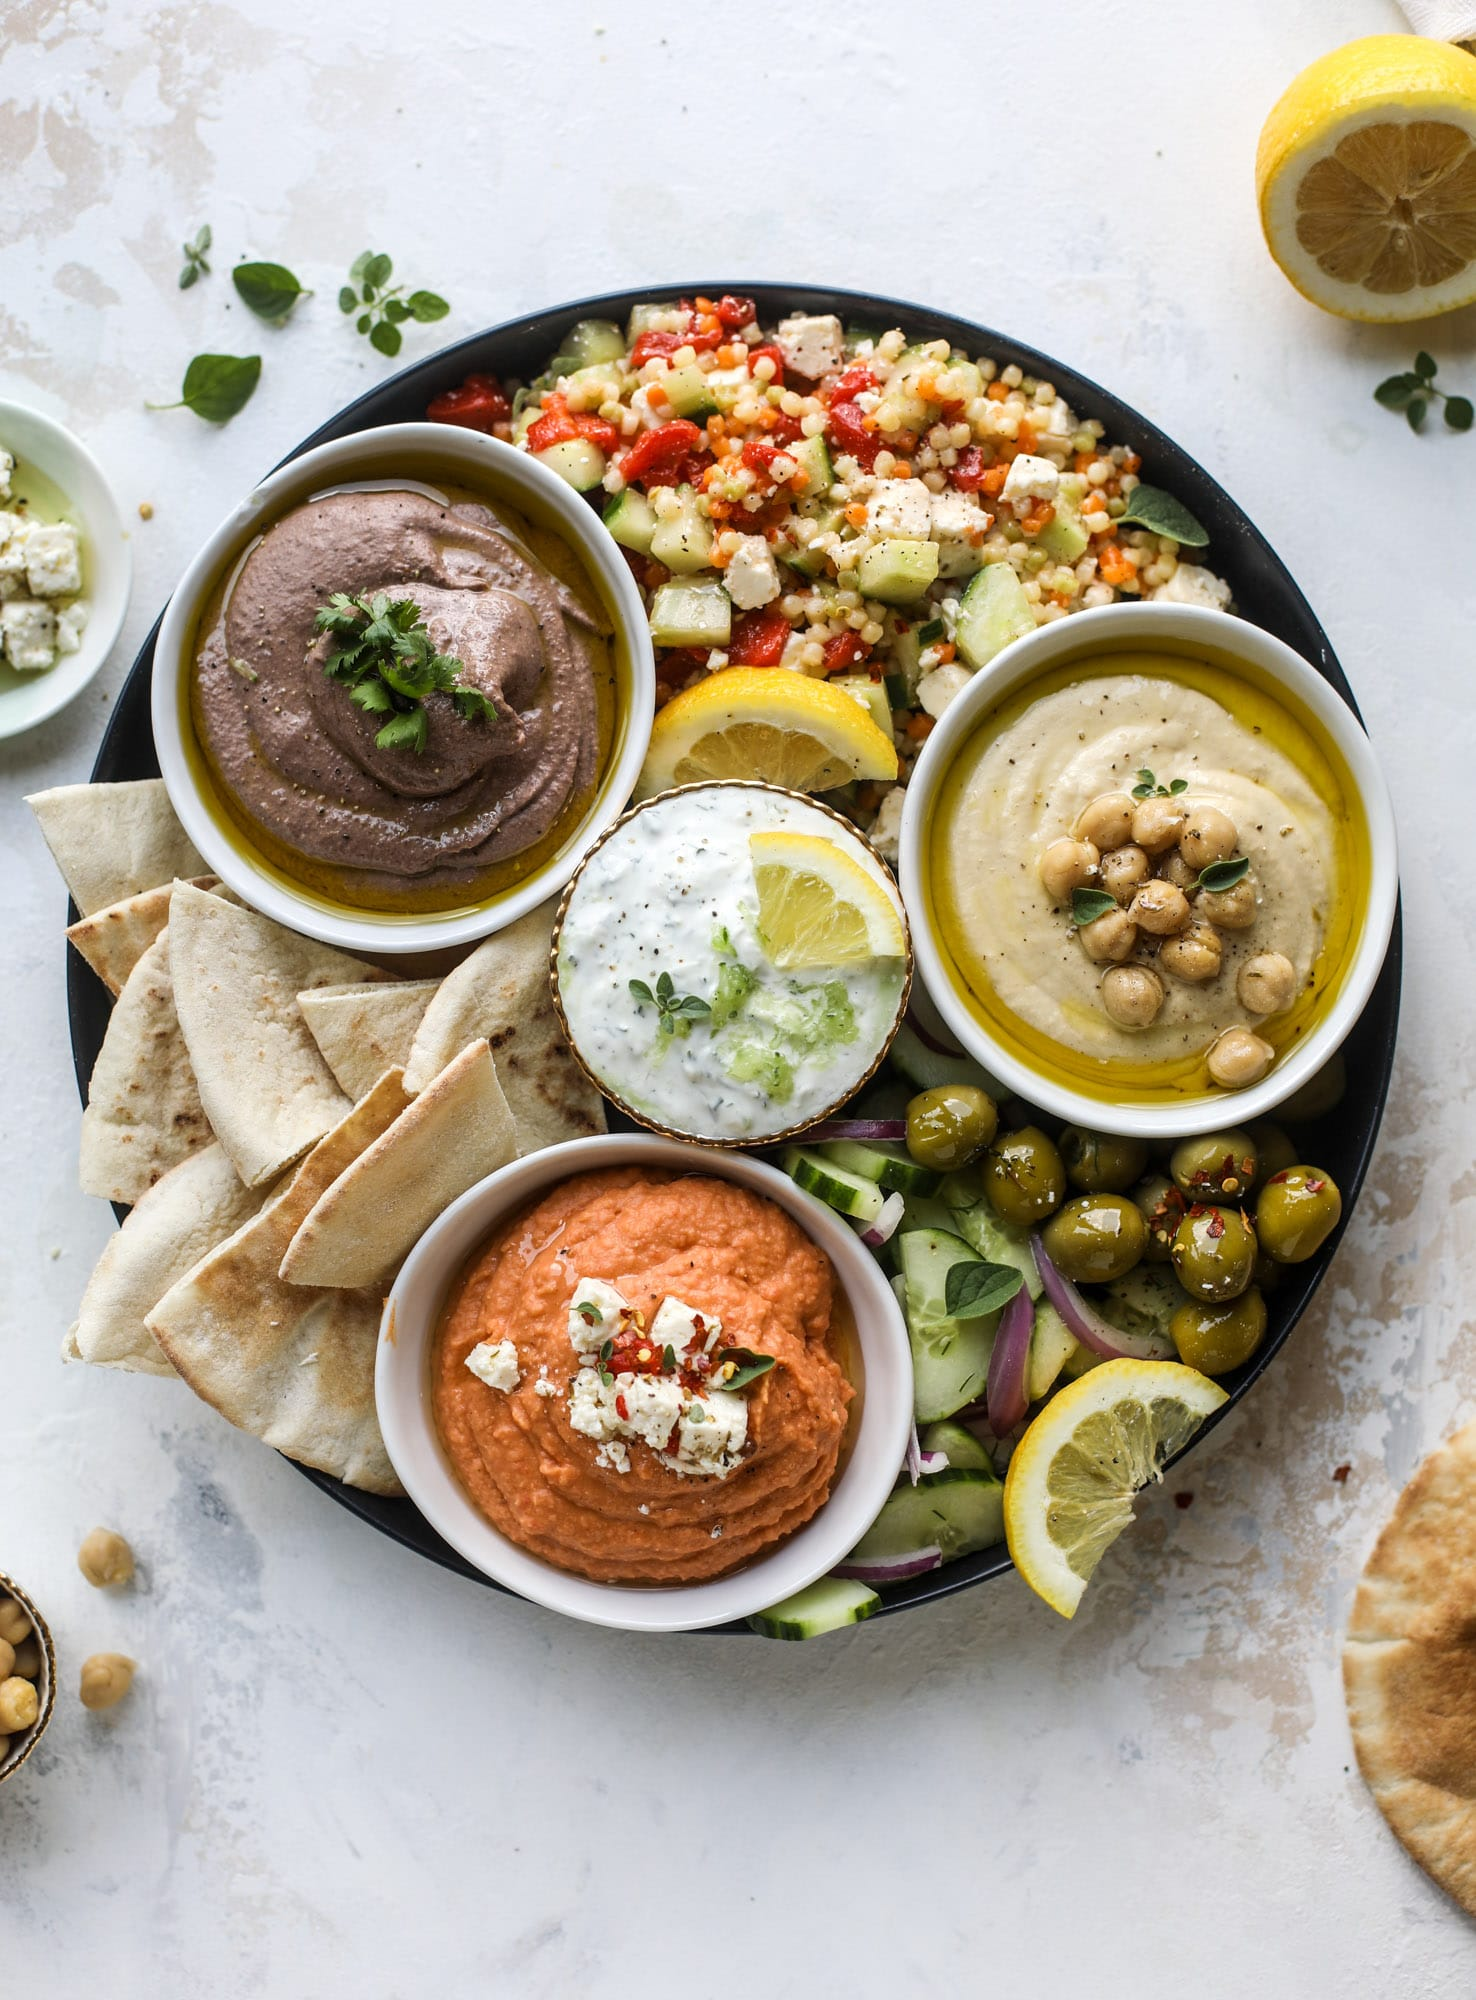 Here You Can Find Out How To Make The Perfect Hummus Platter This Trio Includes